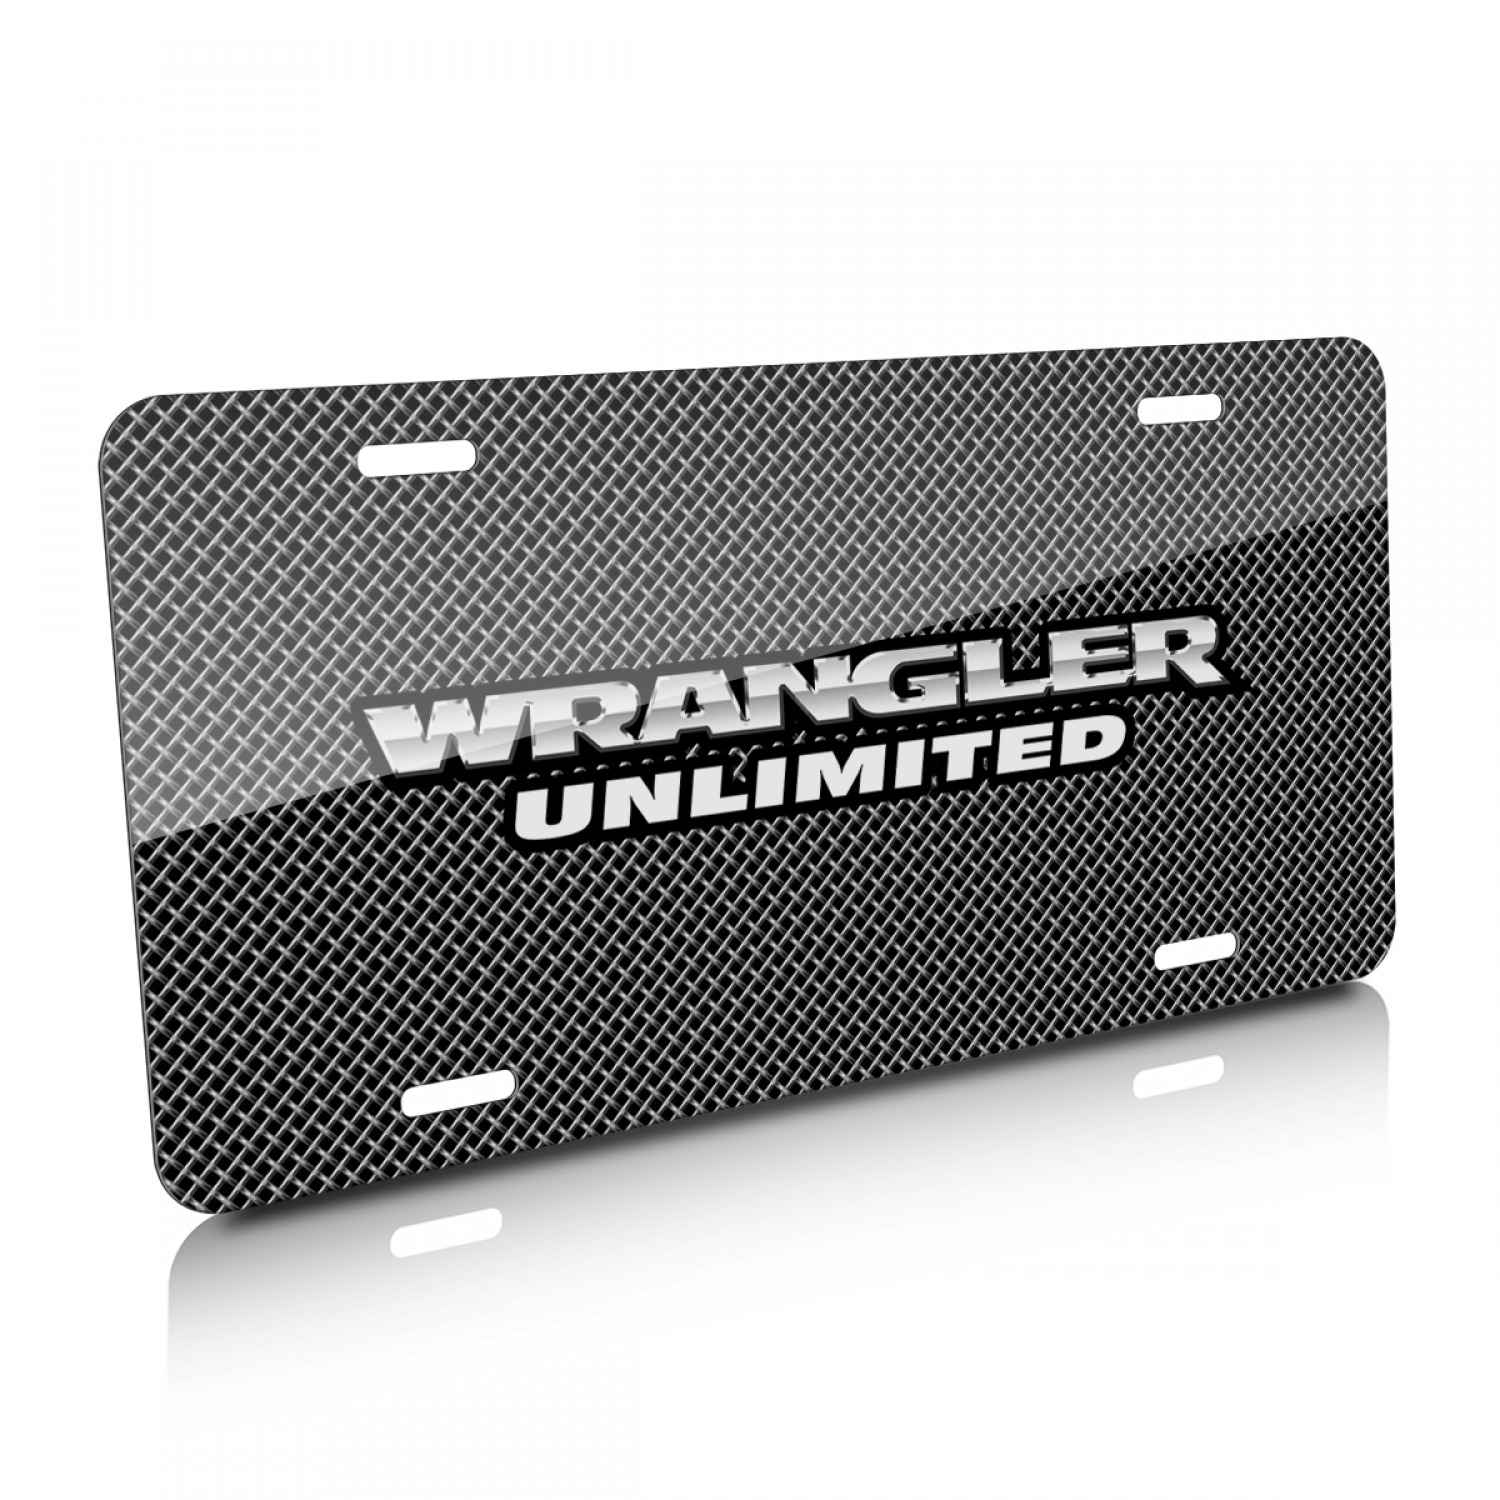 Jeep Wrangler Unlimited Mesh Grill Graphic Aluminum License Plate